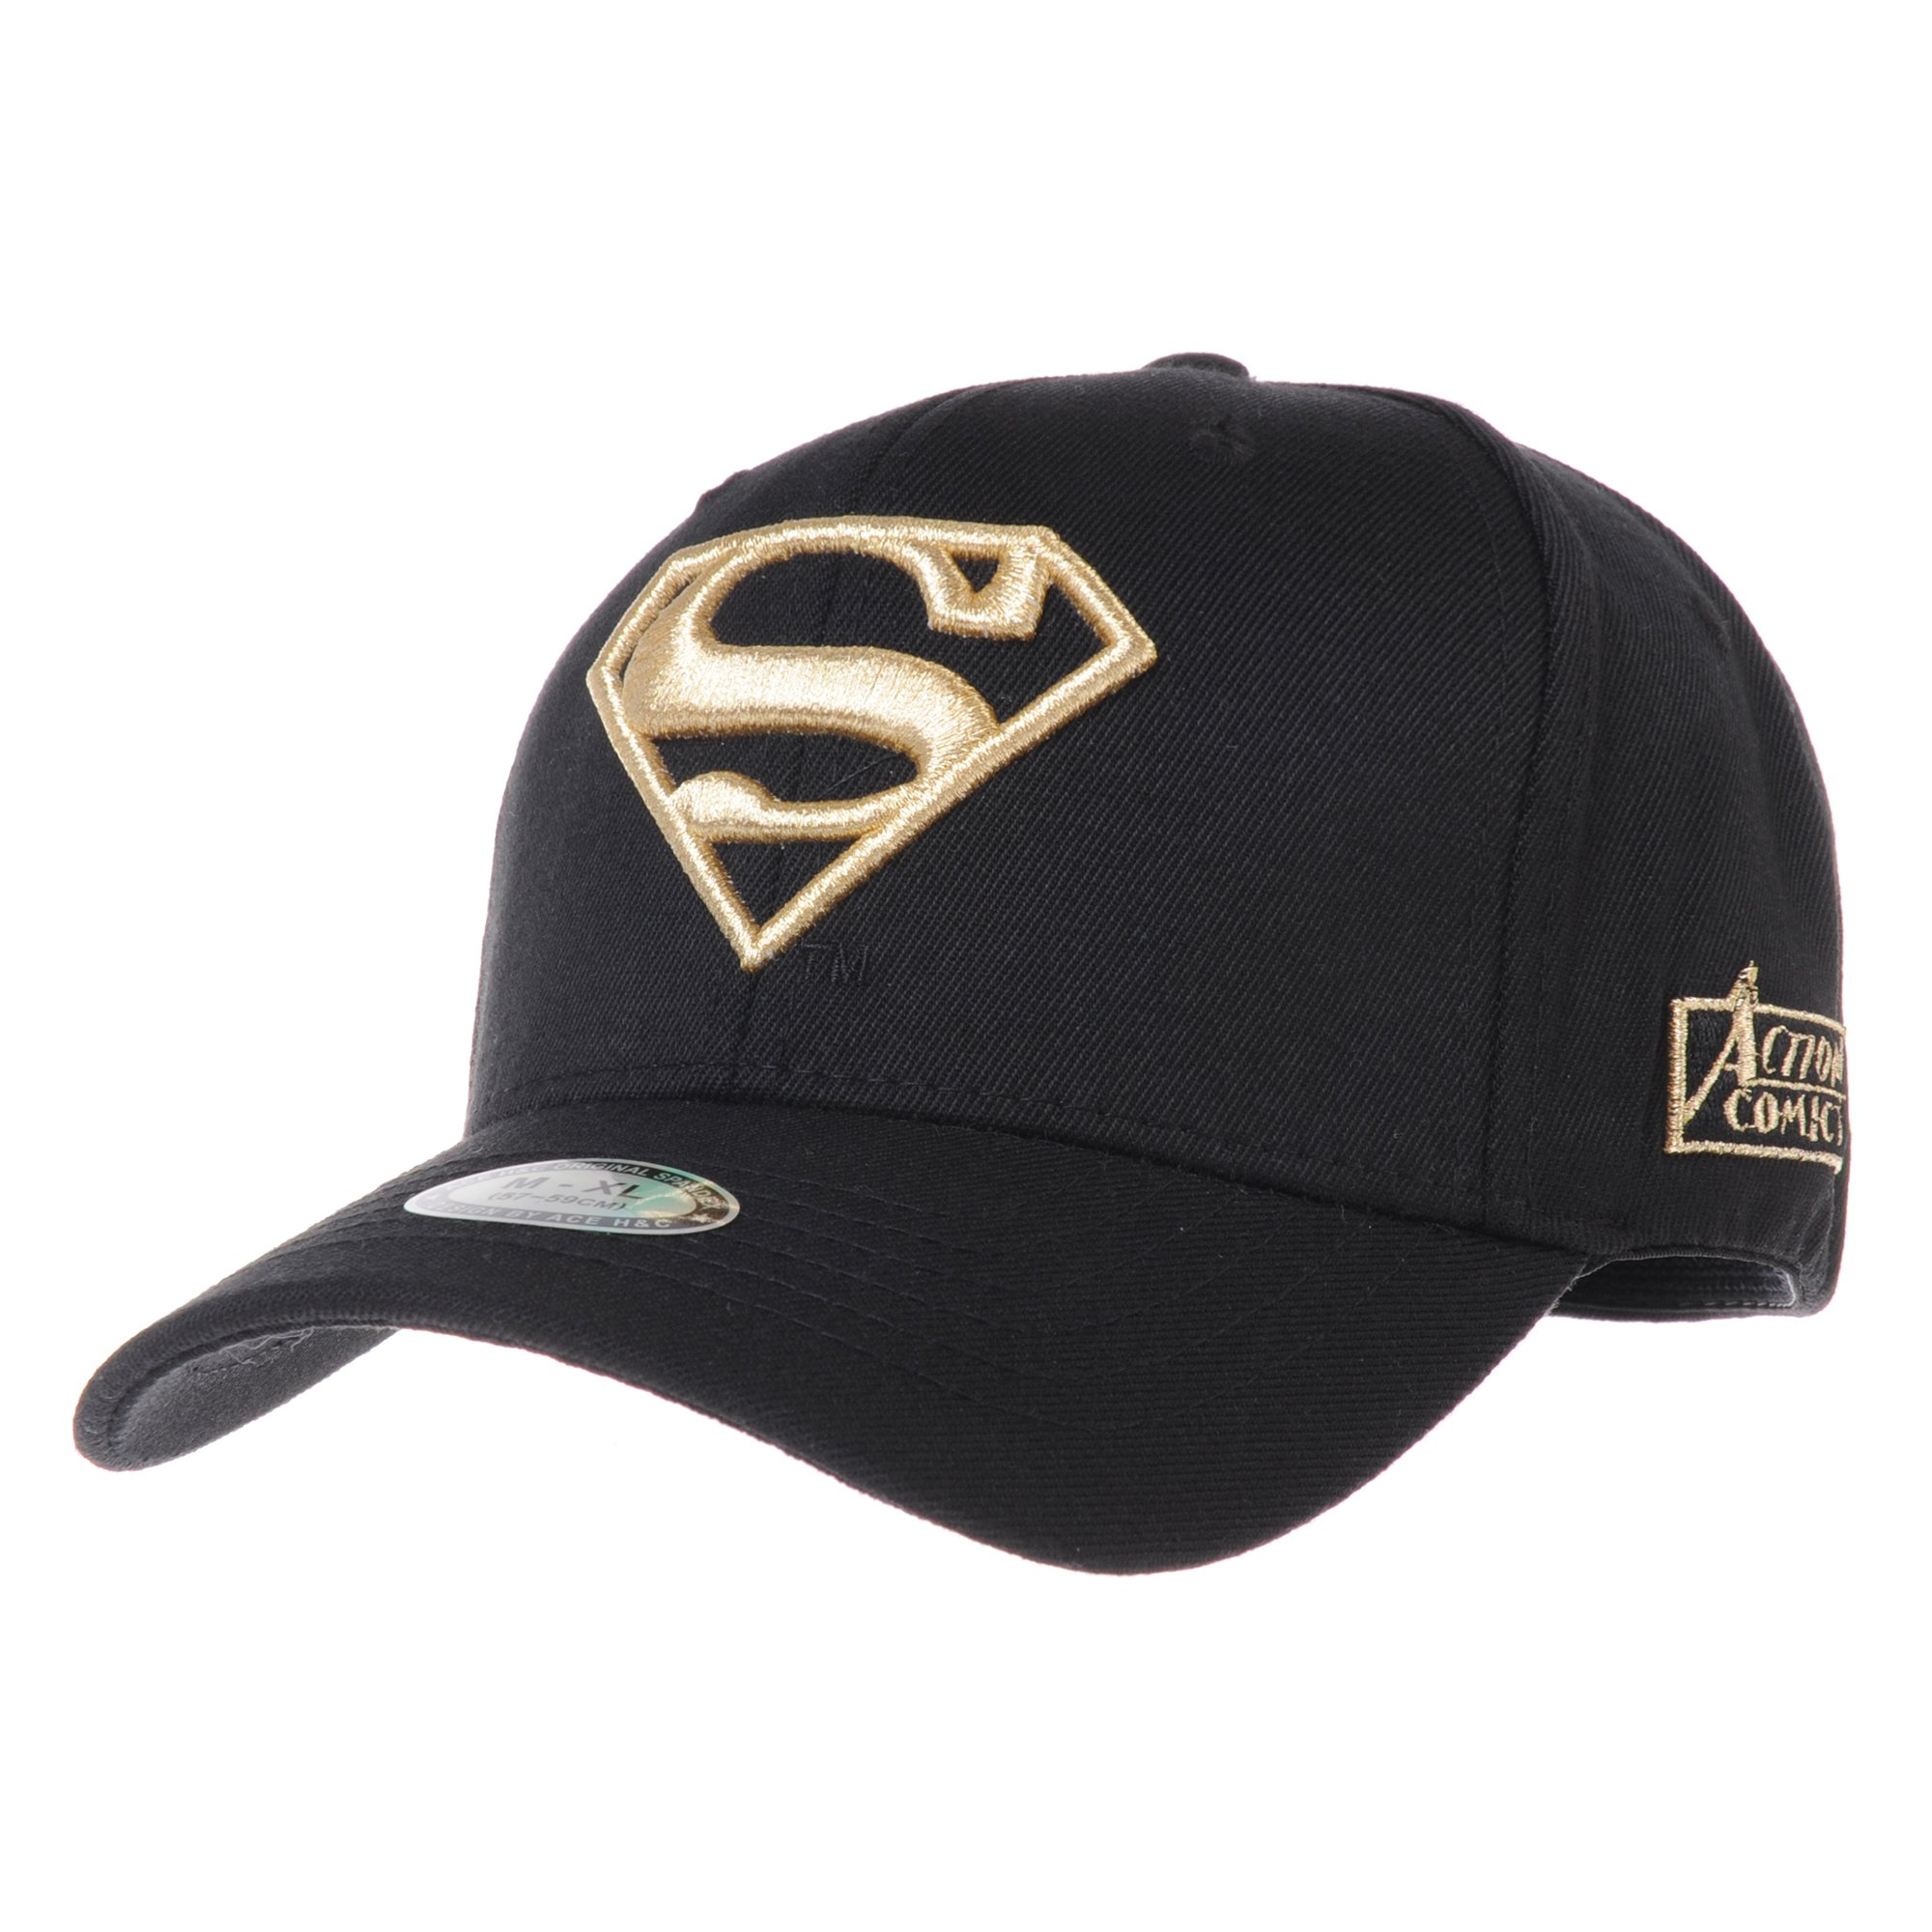 WITHMOONS Superman Shield Embroidery Cotton Baseball Cap AC3260 (Gold, M)